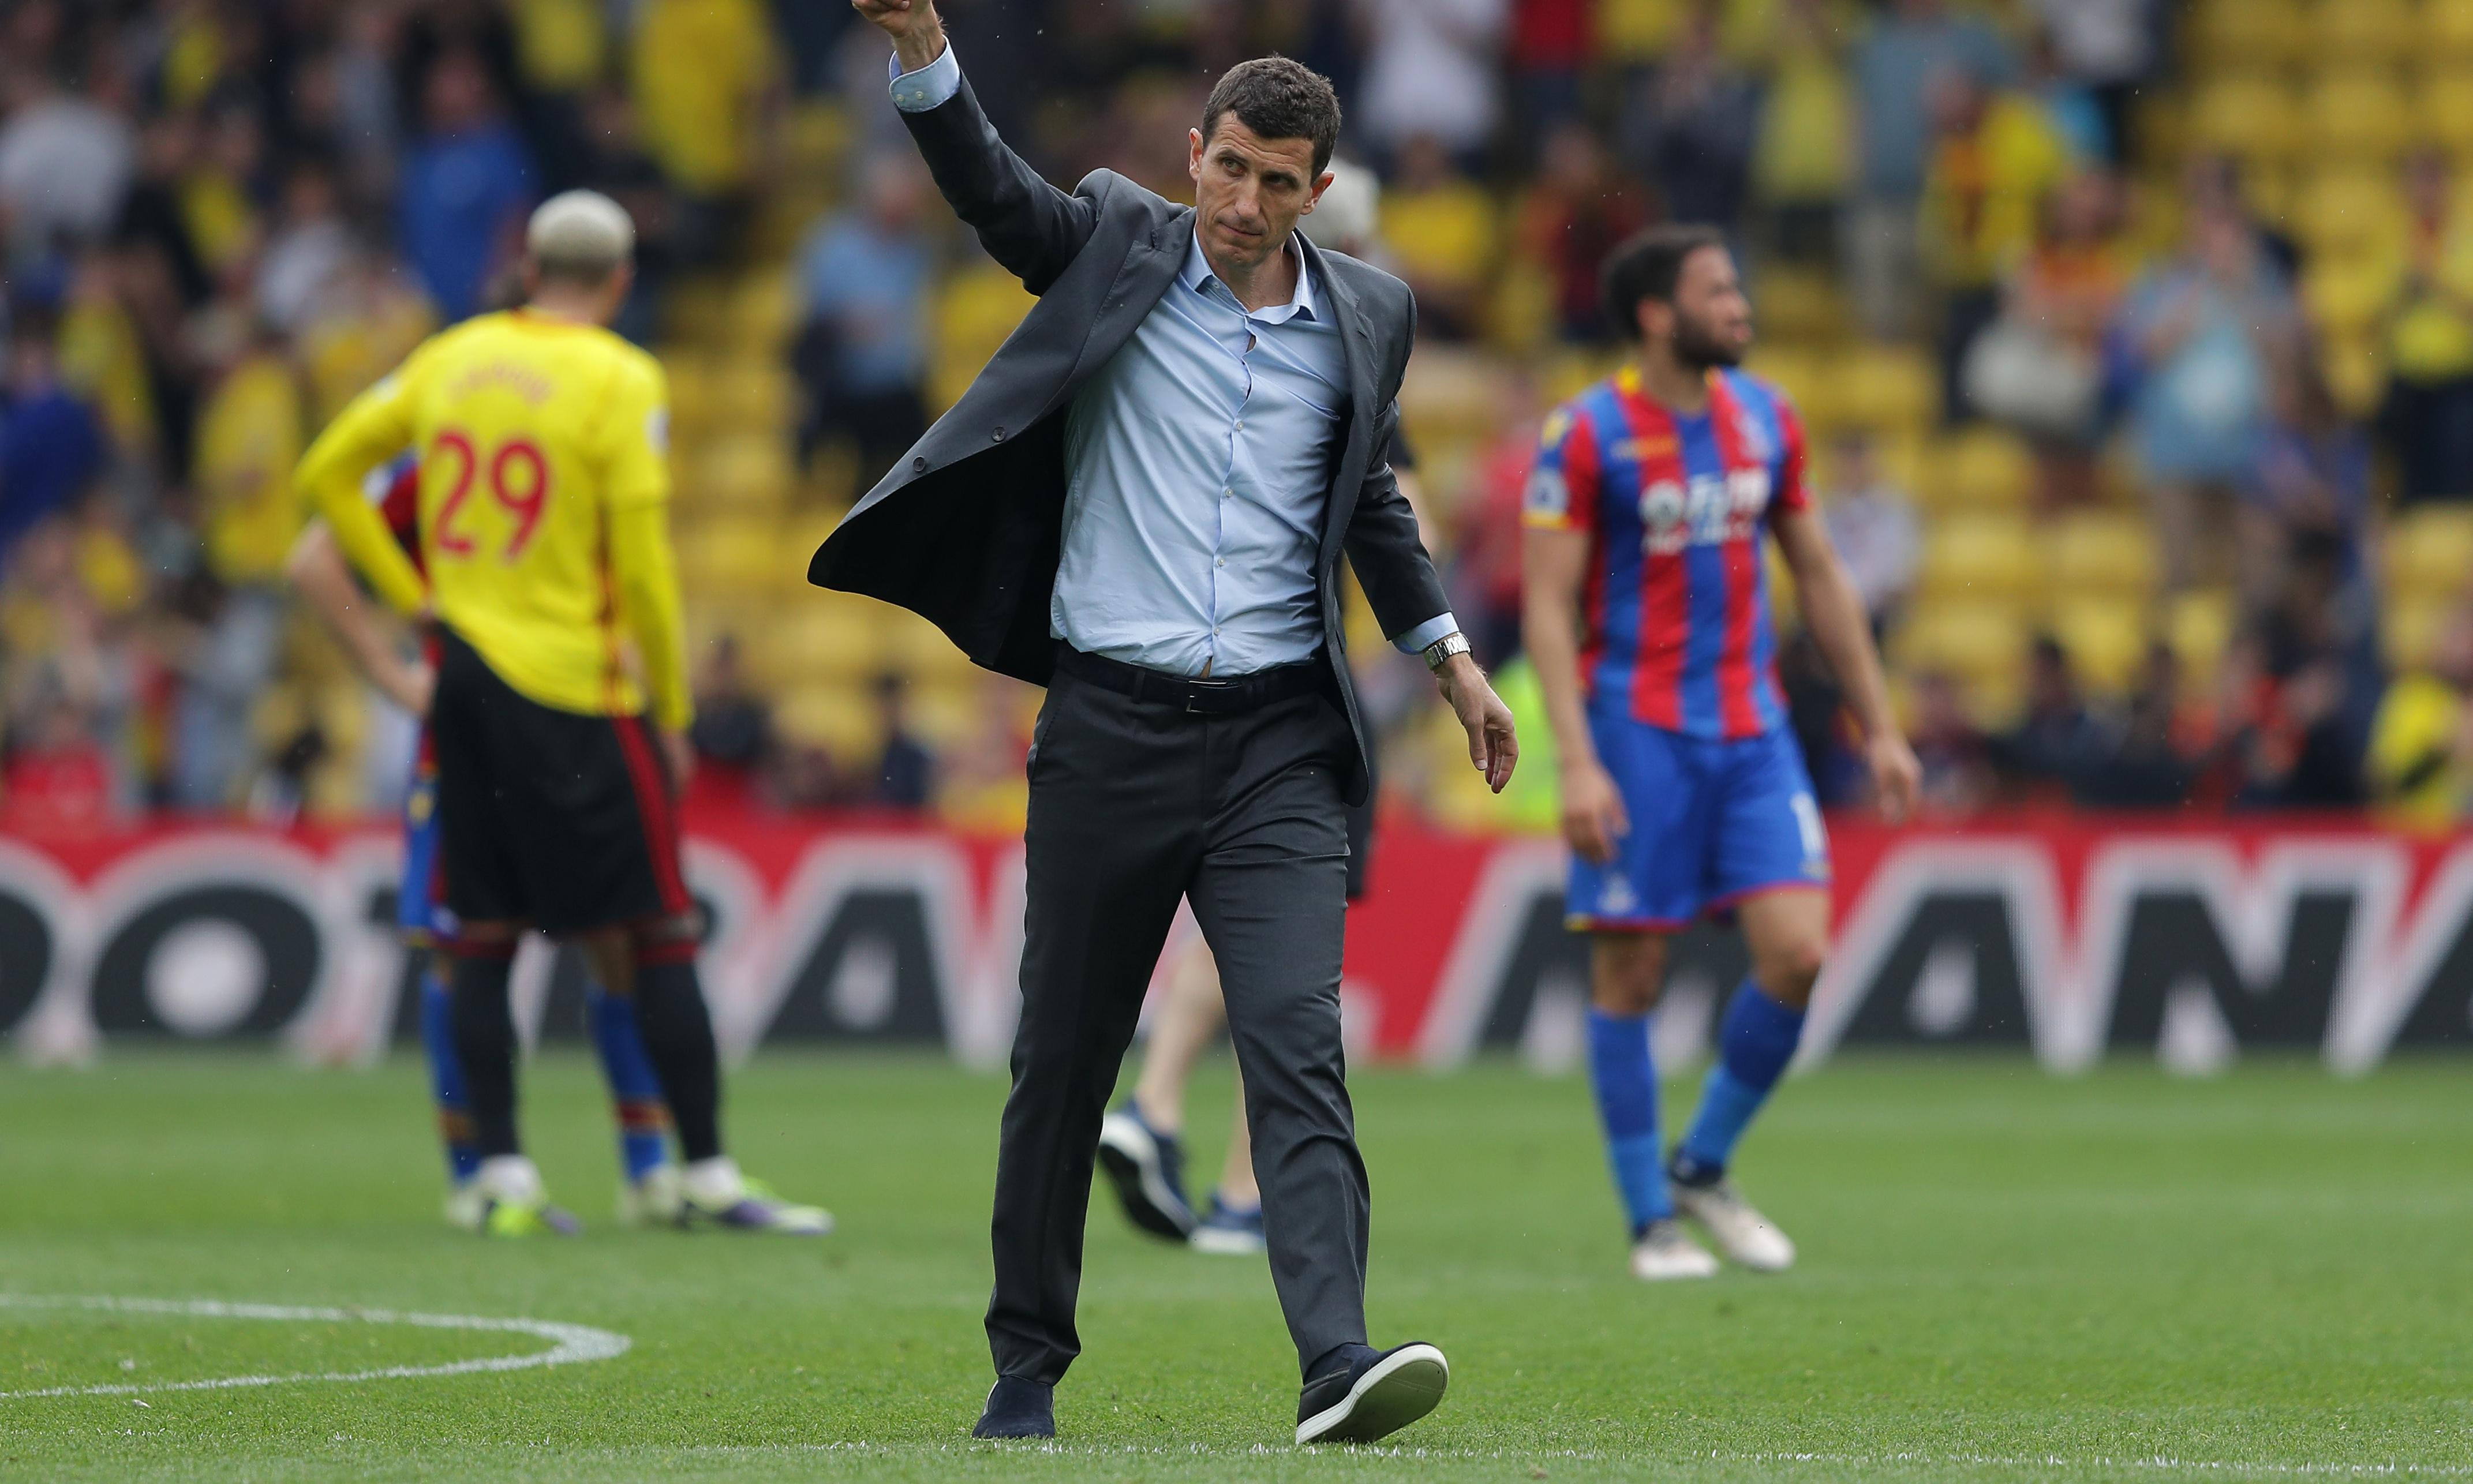 From Javi Gracia to plywood selfies: this week's fashion trends